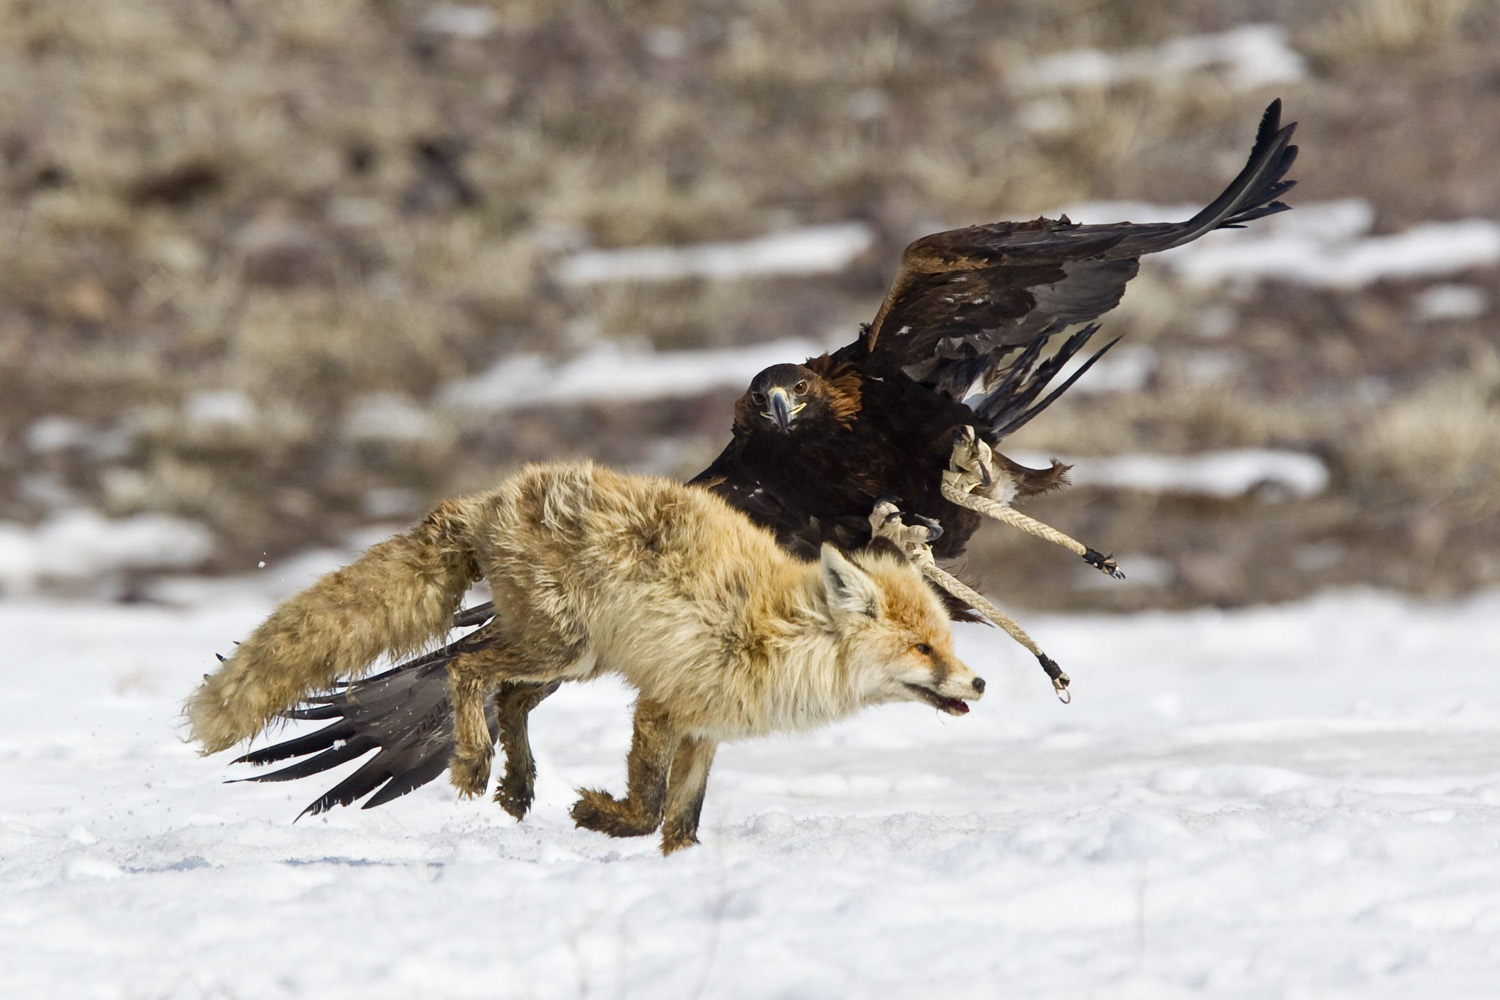 Feb. 23, 2013. A tamed golden eagle attacks a fox during an annual hunting competition in Chengelsy Gorge, some 150 km (93 miles) east of Almaty in Kazakhstan.